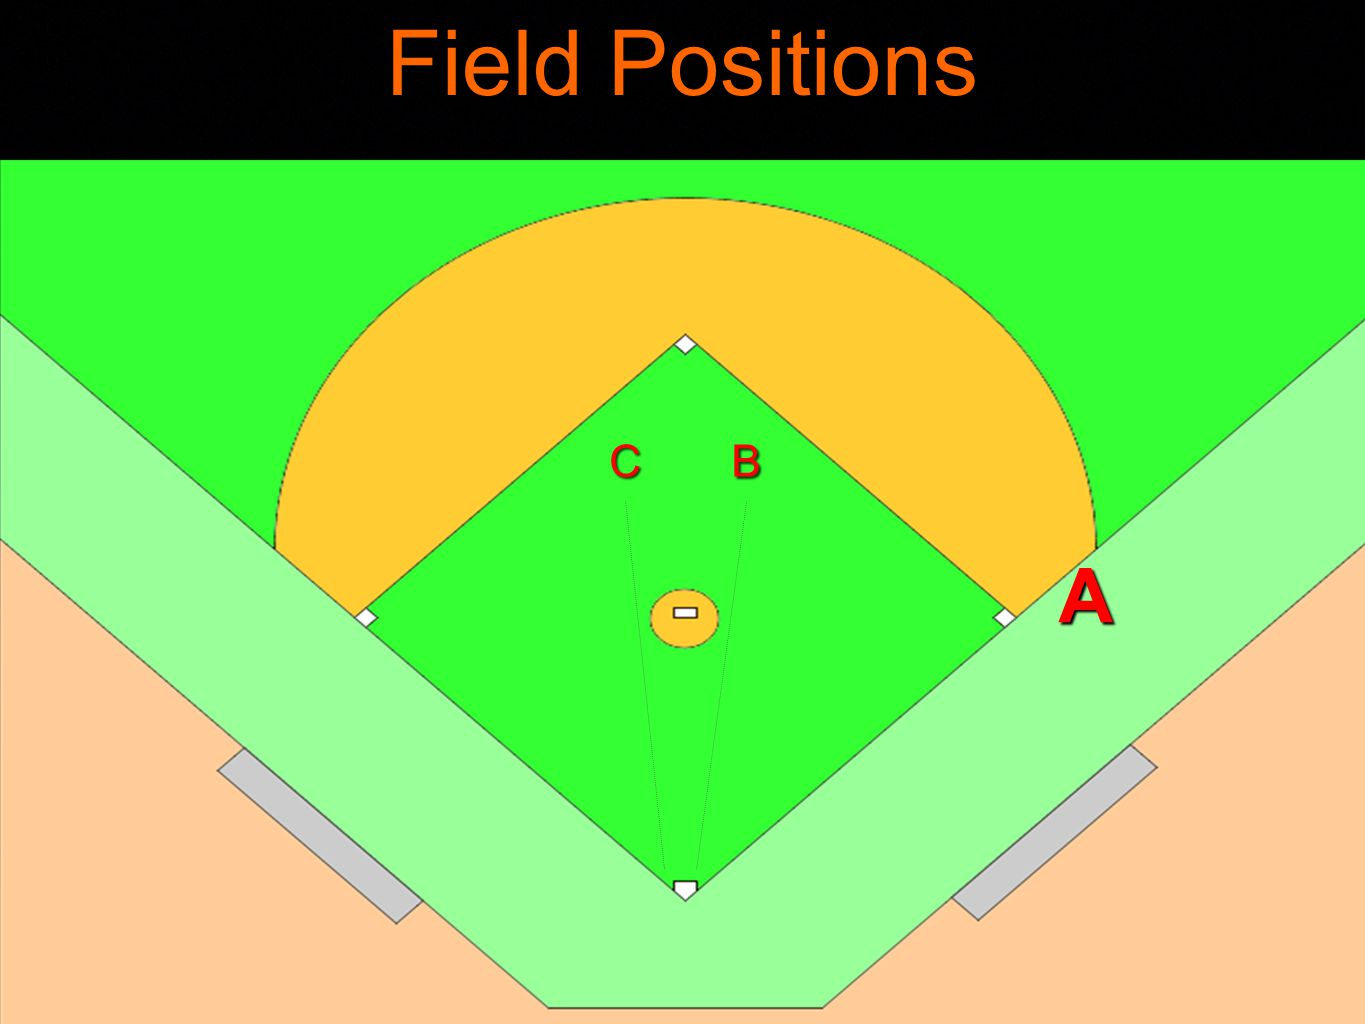 U1 U2U3 Situation 2 No one on base Fly ball hit down the right field line, or possible trap play from short center field to the right field line.